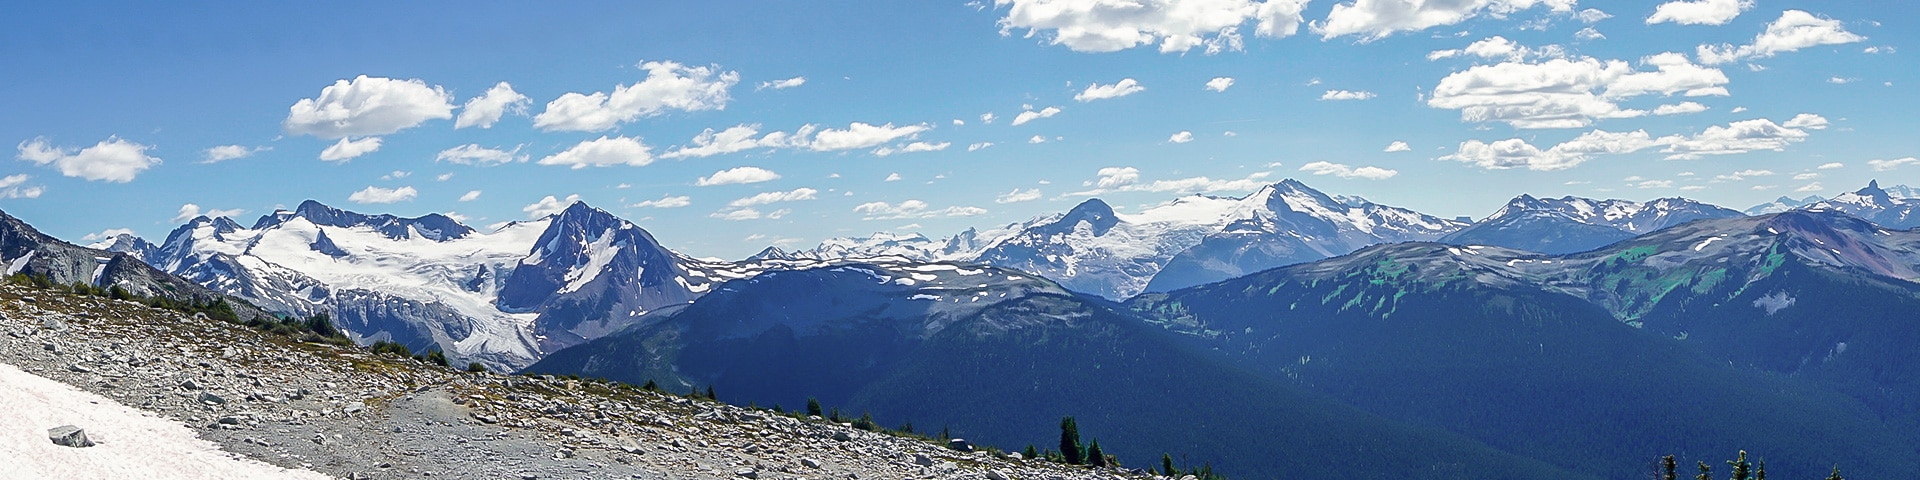 Panorama of the Blackcomb Meadows hike in Whistler, British Columbia